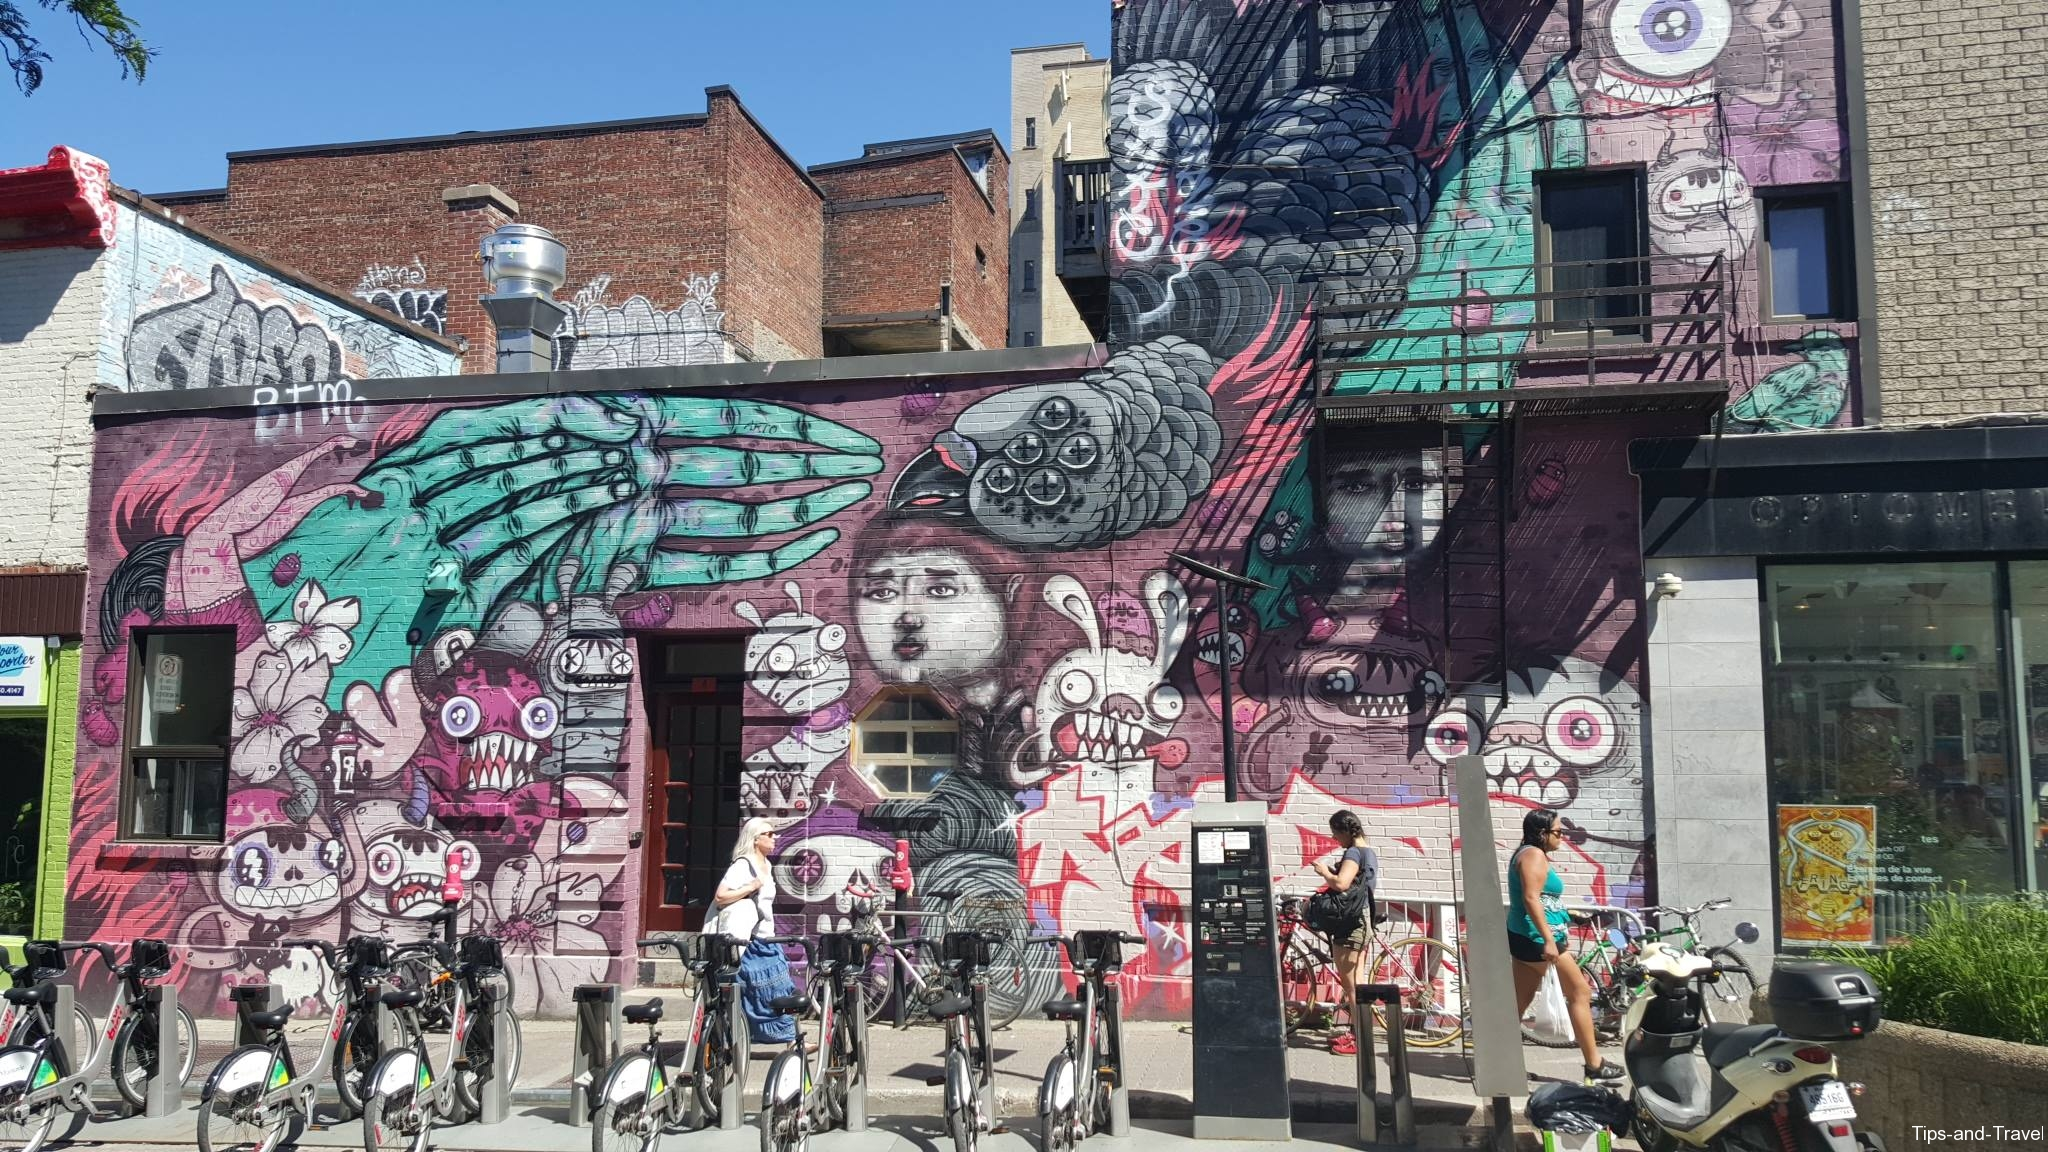 Mural festival montreal quebec canada tips and travel for Mural festival